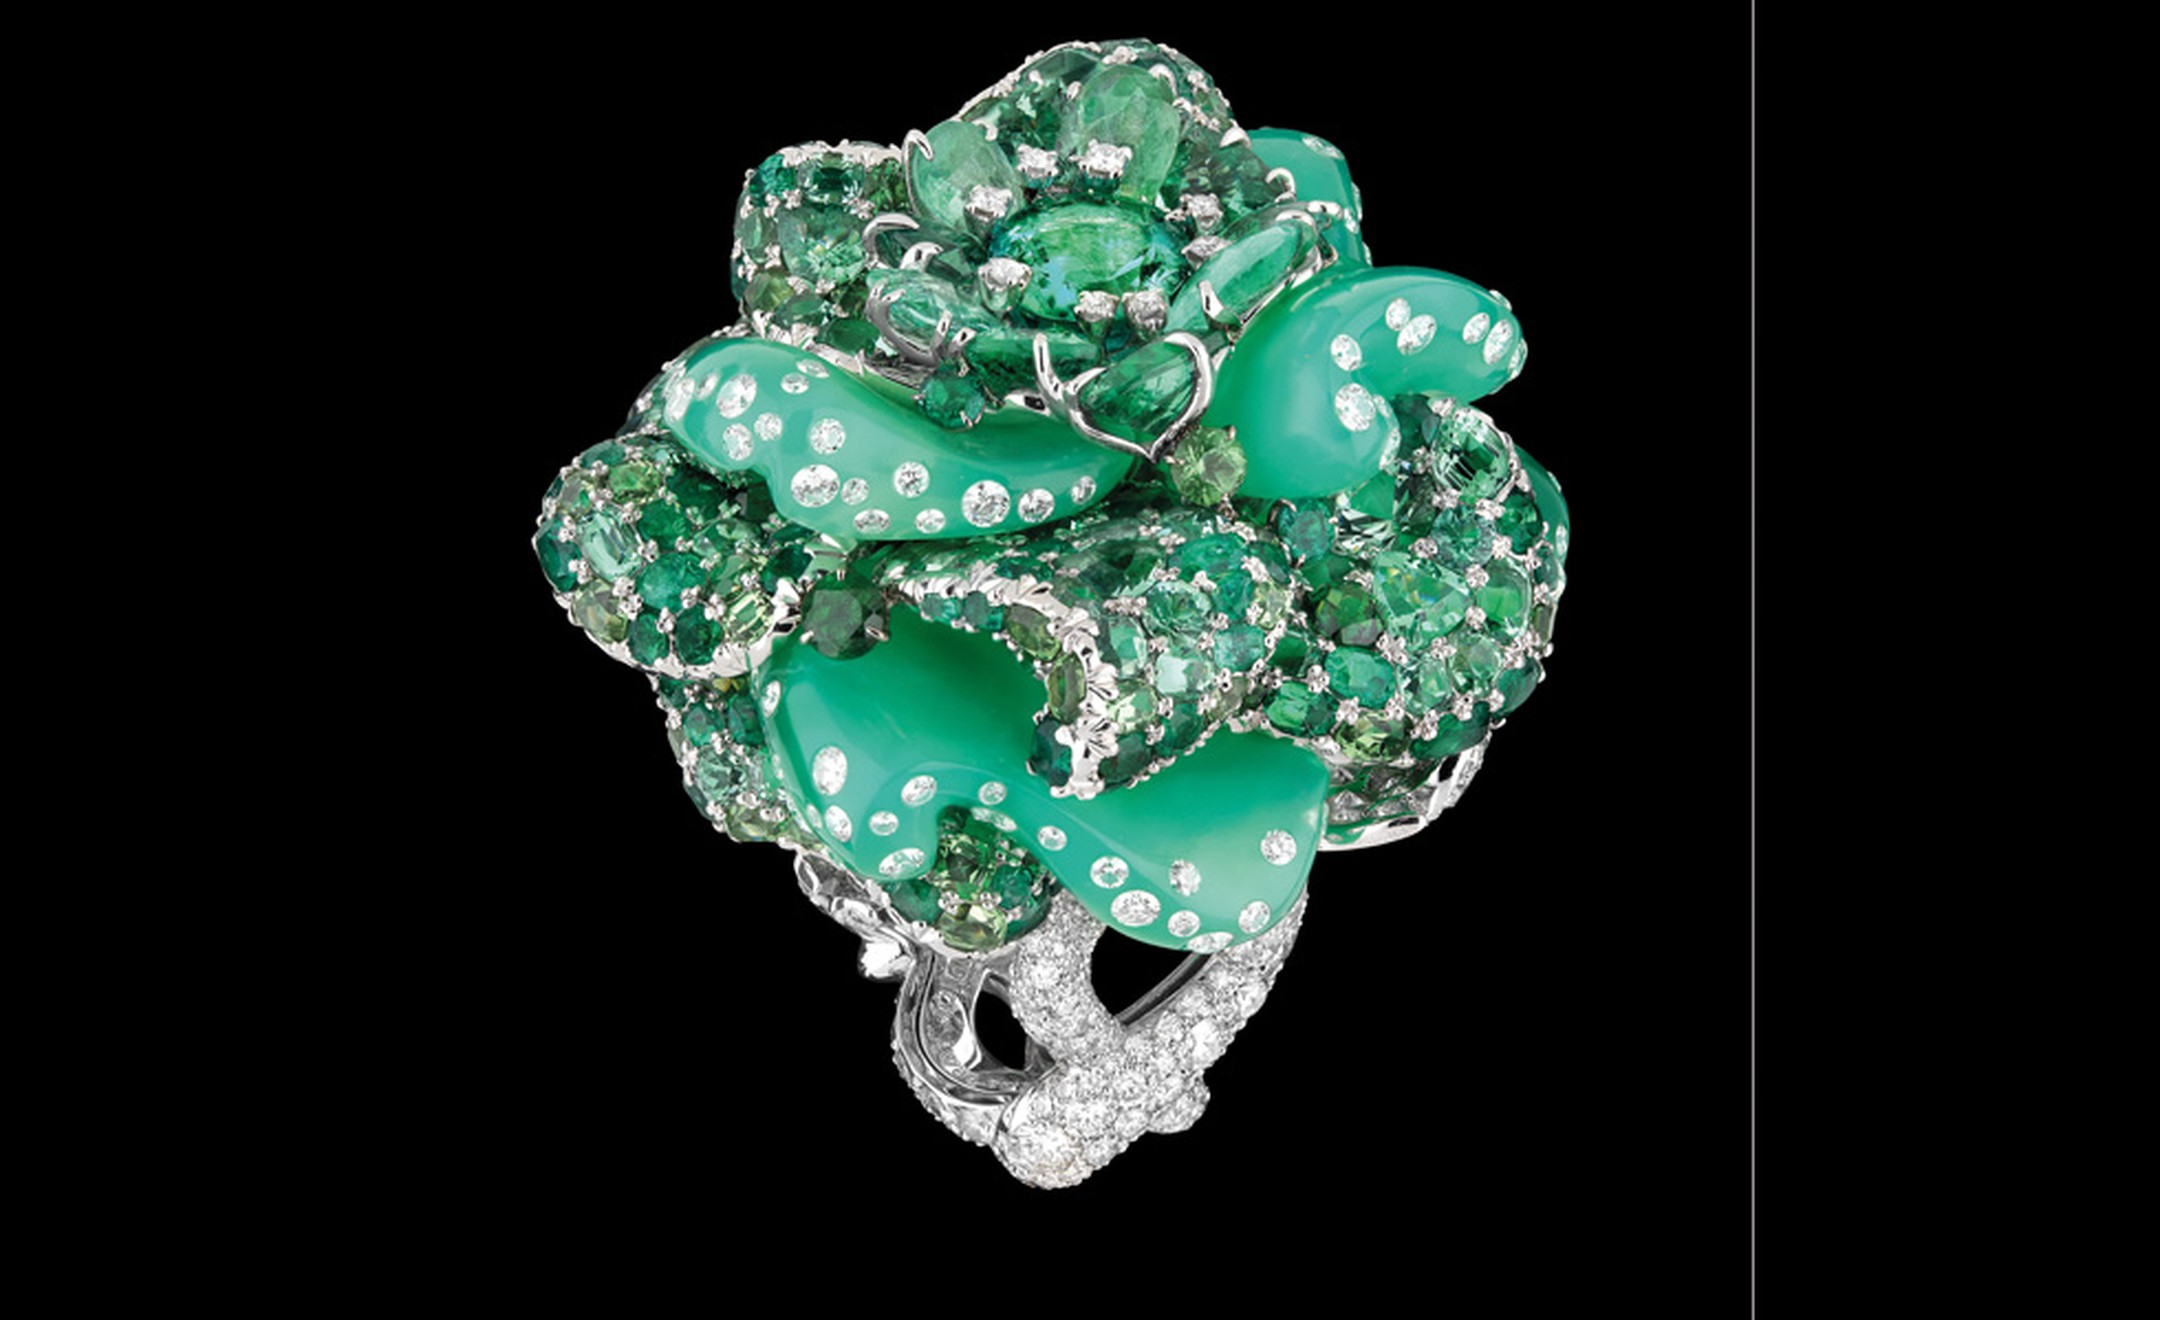 DIOR FINE JEWELLERY LE BAL DES ROSES BAL D'AUTREFOIS RING WHITE GOLD, DIAMONDS, EMERALDS, CHRYSOPRASE, GREEN TOURMALINES, TSAVORITE GARNETS AND PARAIBA TOURMALINES